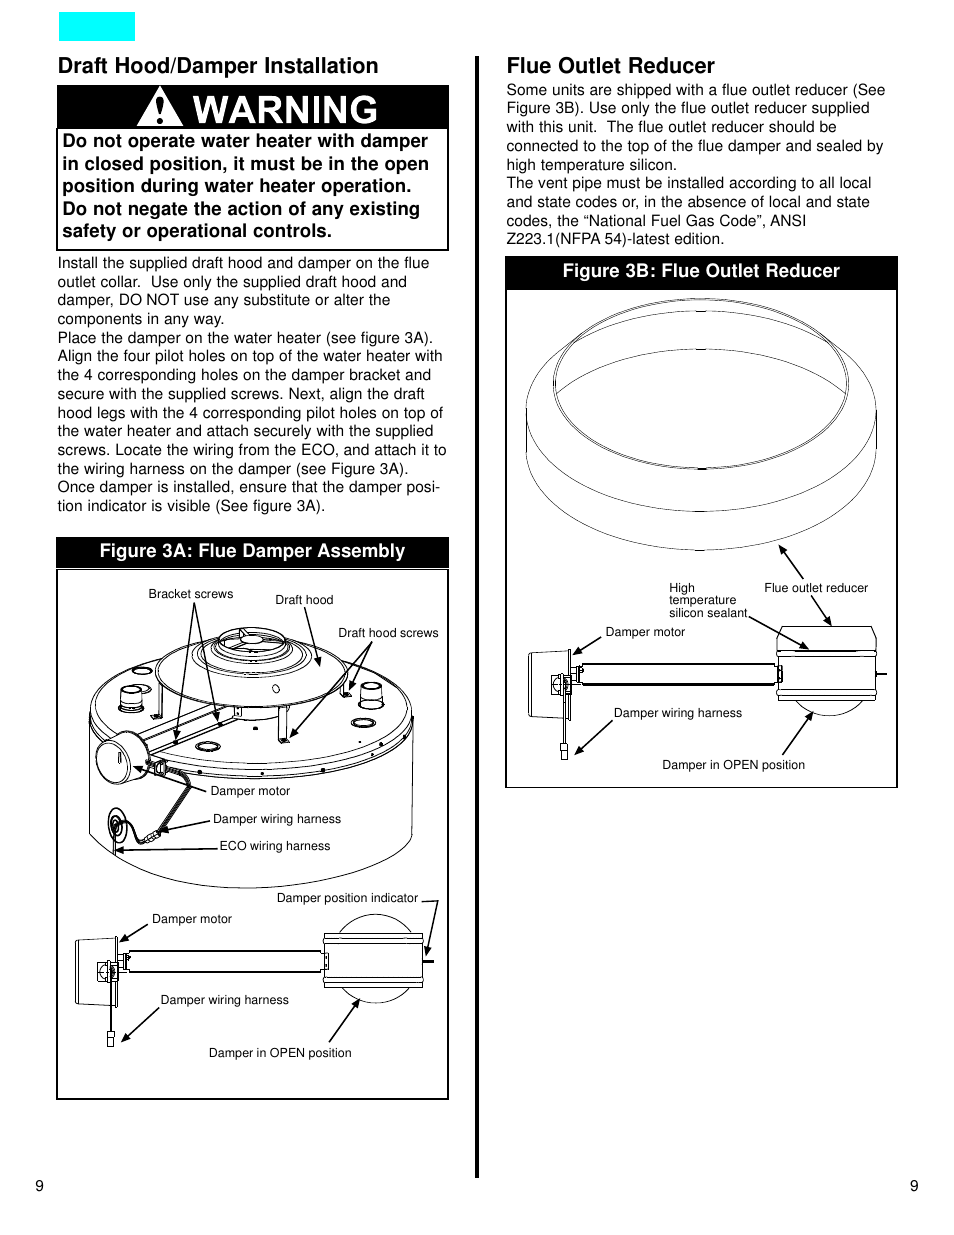 hight resolution of draft hood damper installation flue outlet reducer american water heater dcg user manual page 9 26